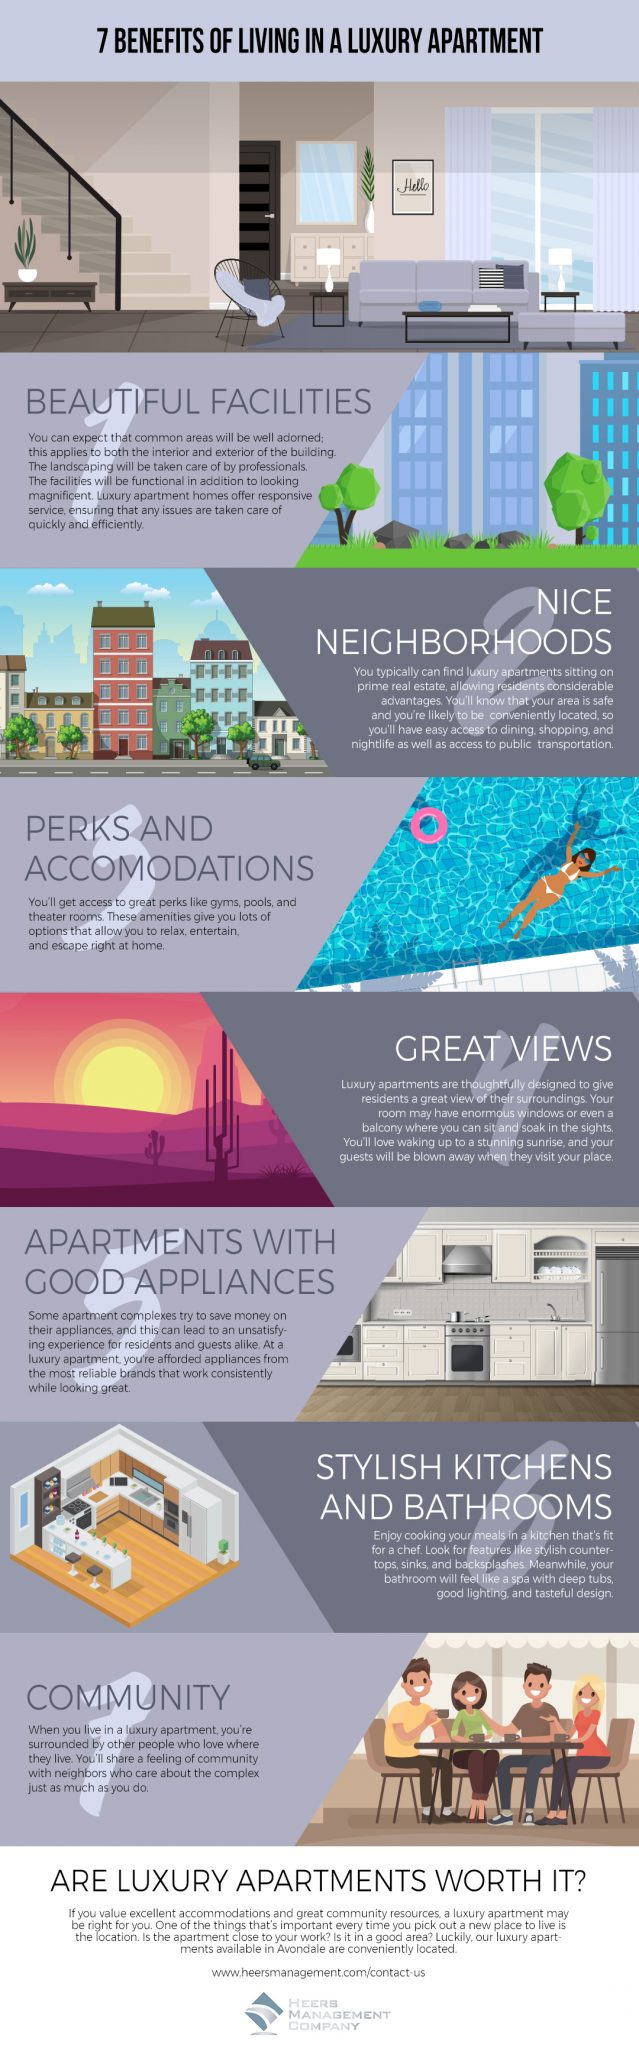 7 Benefits of Living in a Luxury Apartment